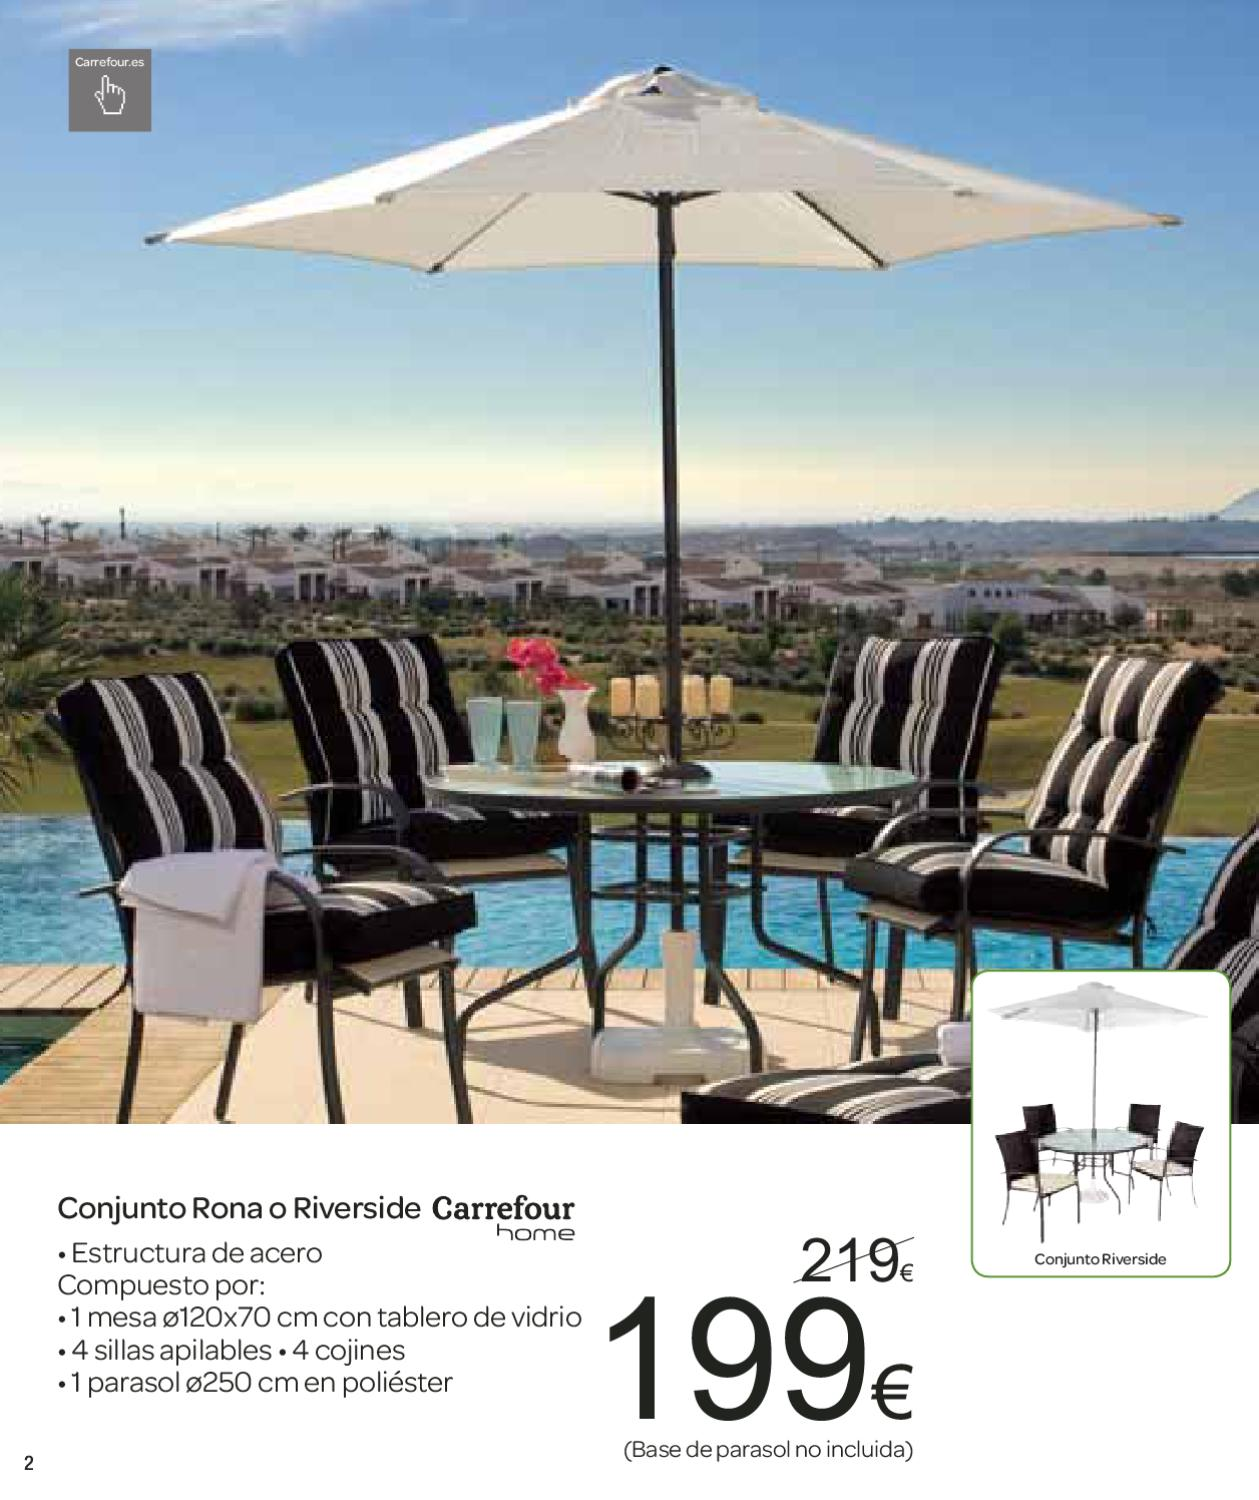 Sillas apilables carrefour with sillas apilables for Piscinas alcampo online